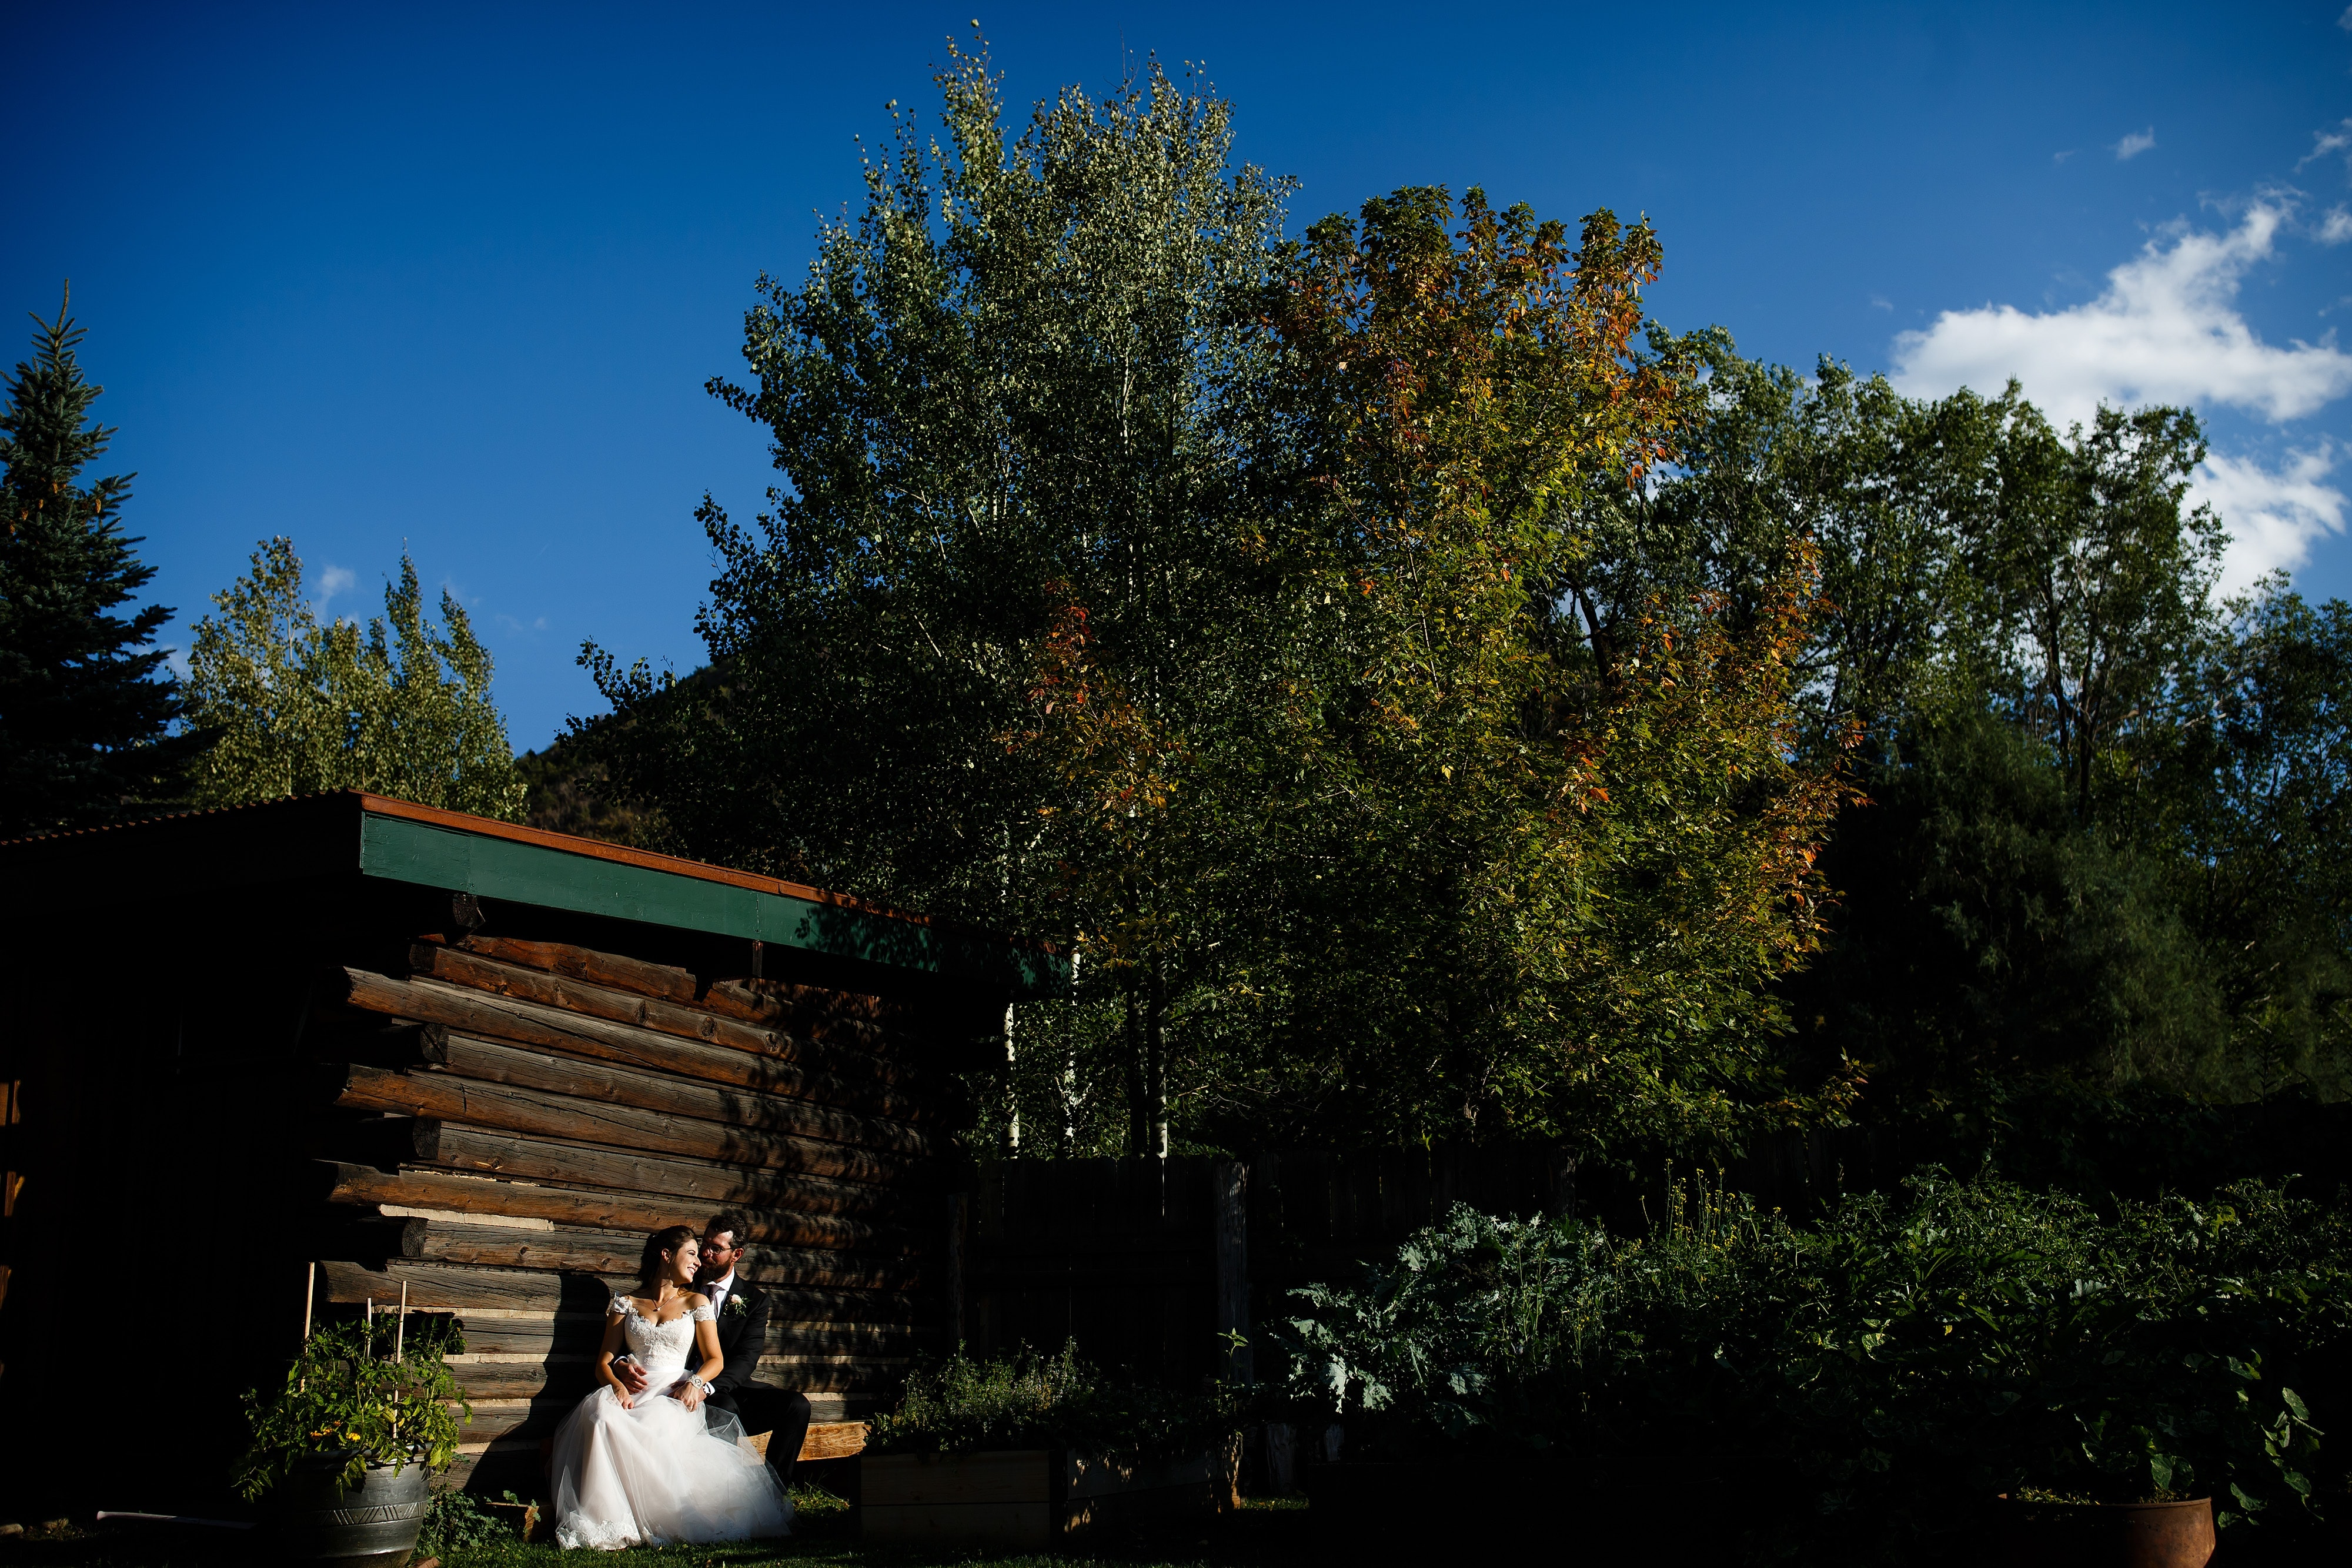 The couple sits on a bench as the sunlight illuminates them during their fall wedding in Snowmass